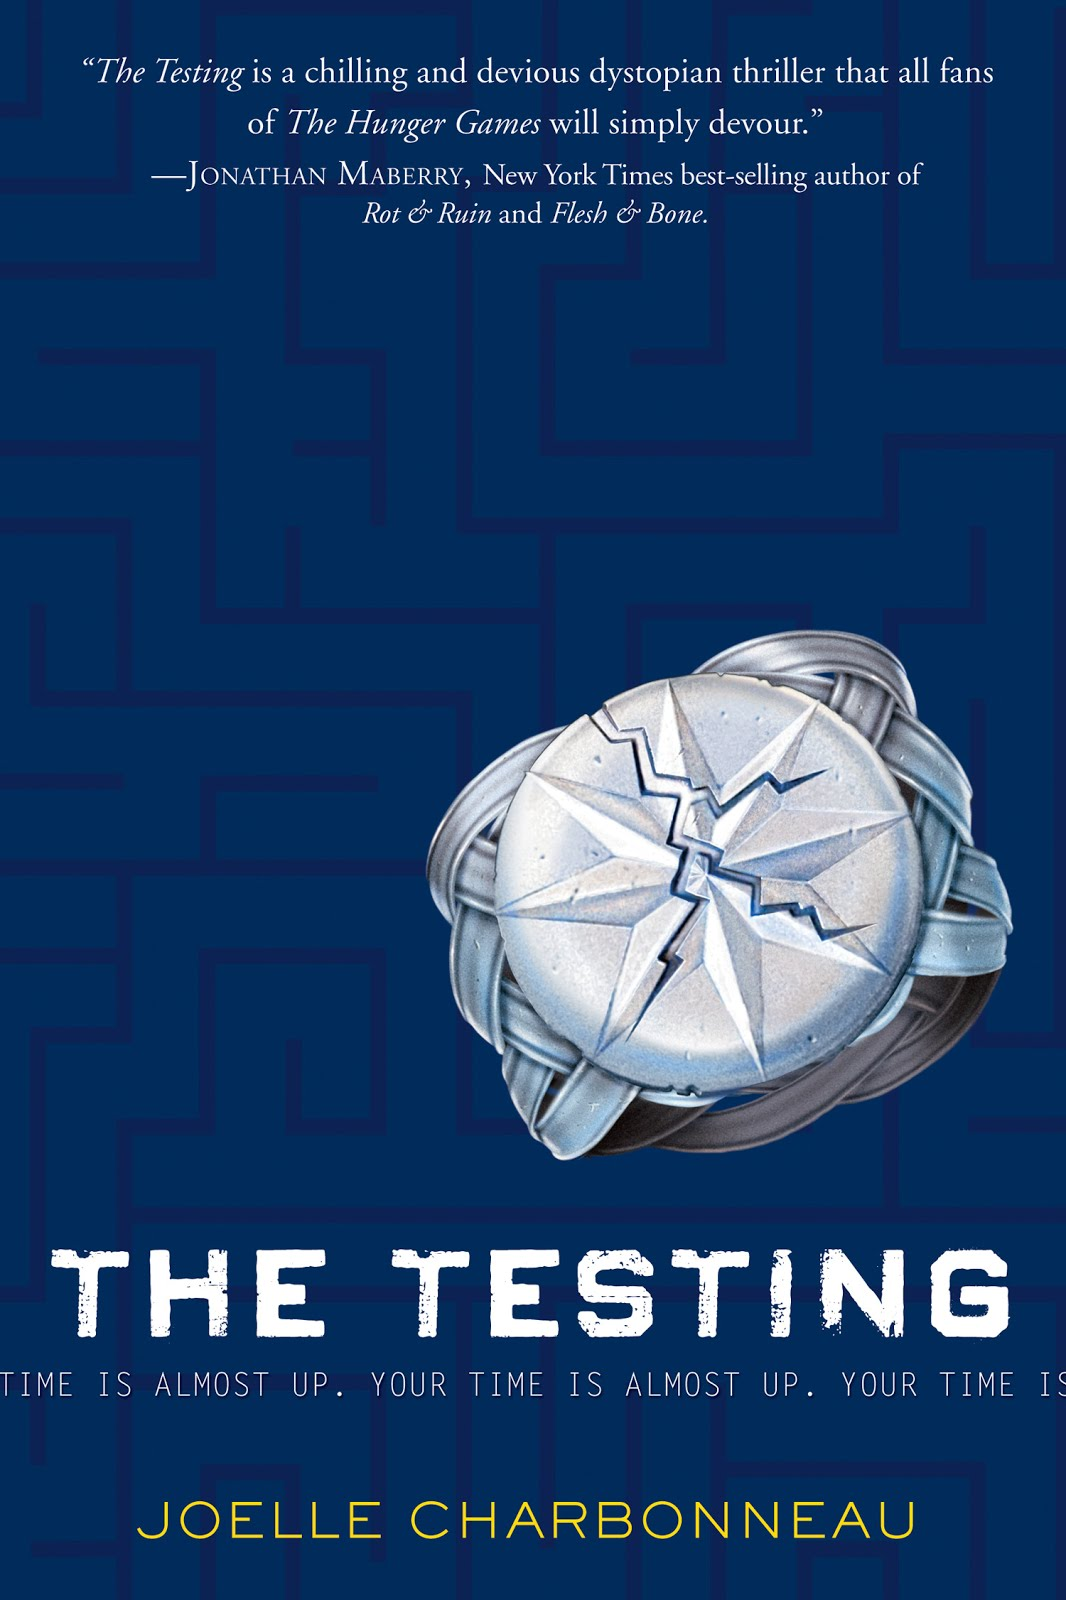 Book Review: The Testing By Joelle Charbonneau